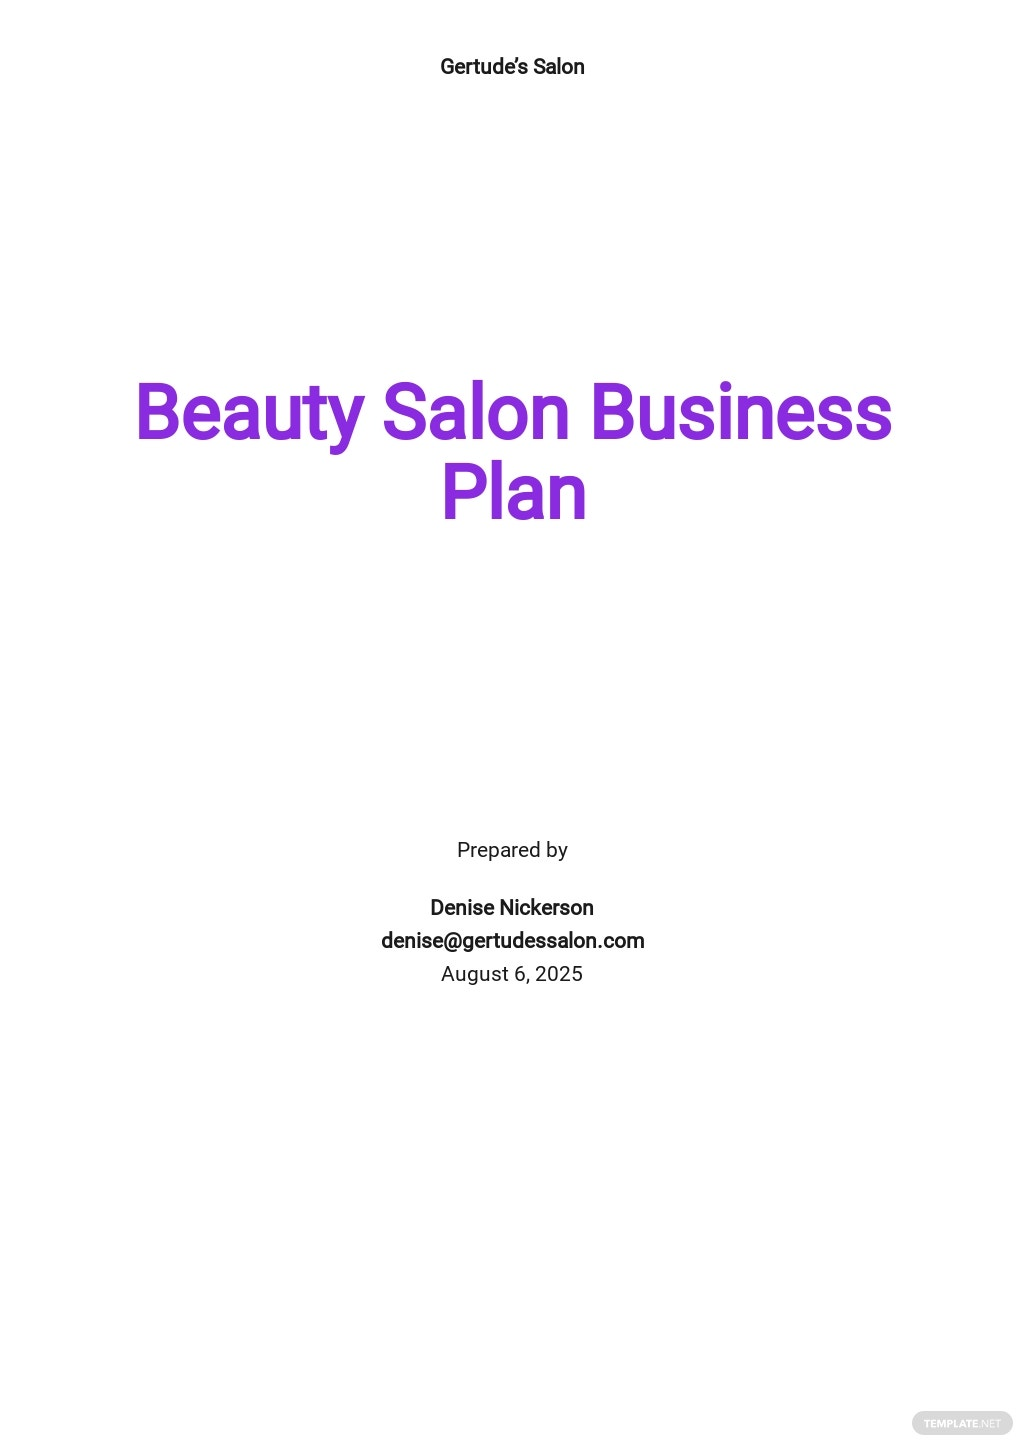 Beauty Salon Business Plan Template.jpe